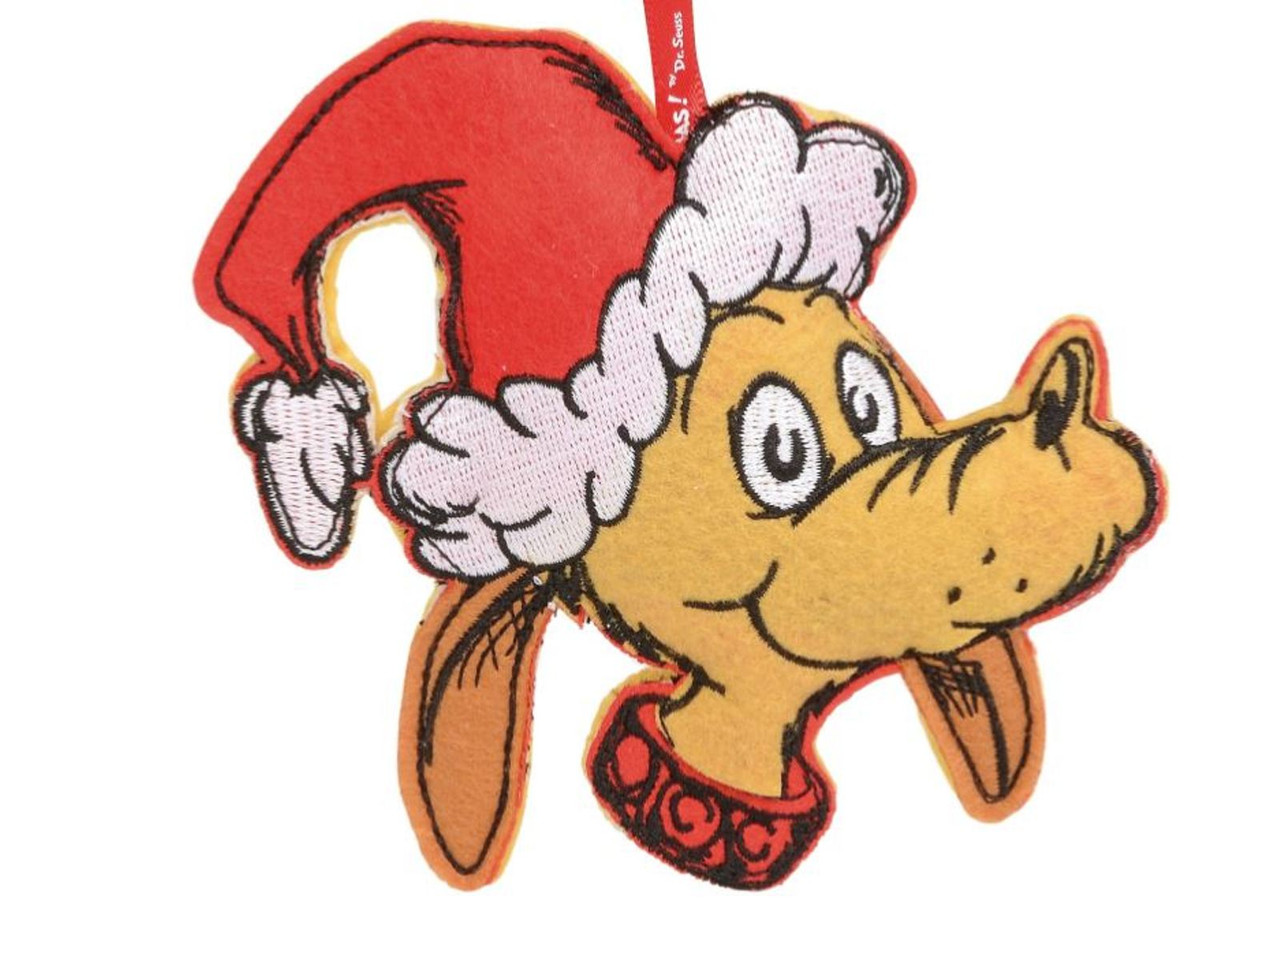 How The Grinch Stole Christmas 1966 Max.How The Grinch Stole Christmas Dr Seuss Max Dog Felt Holiday Ornament Licensed